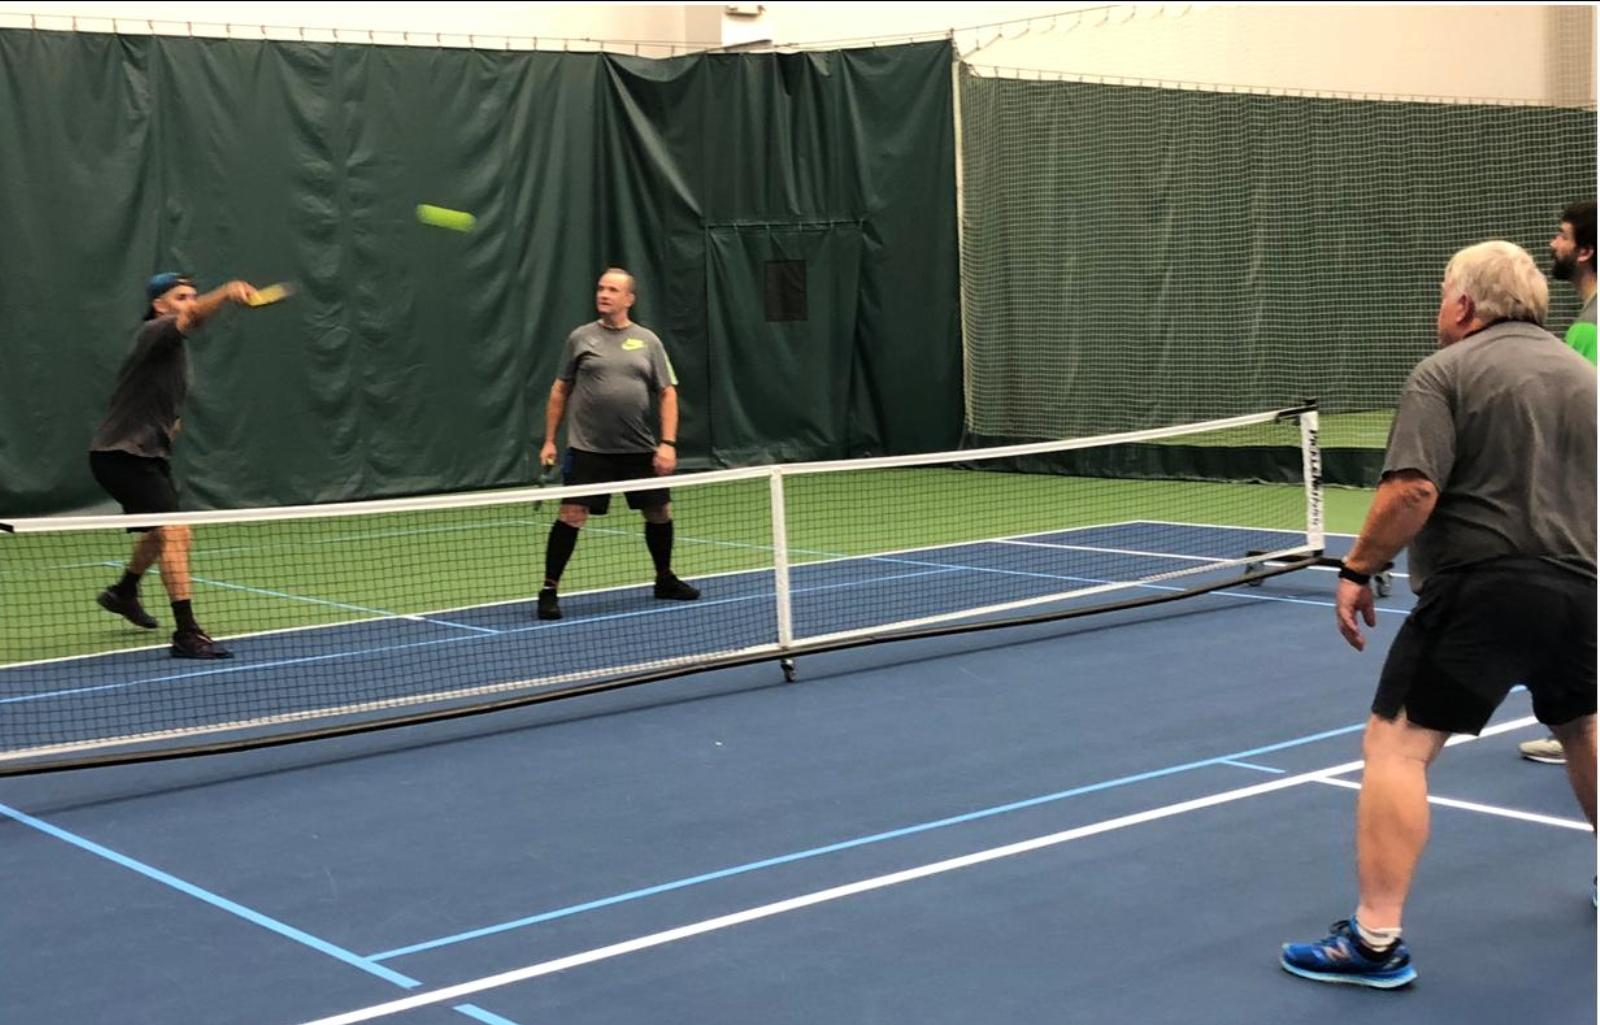 https://cdn2.hubspot.net/hubfs/2470171/blog/Pickleball%20Match.jpg Feature Image